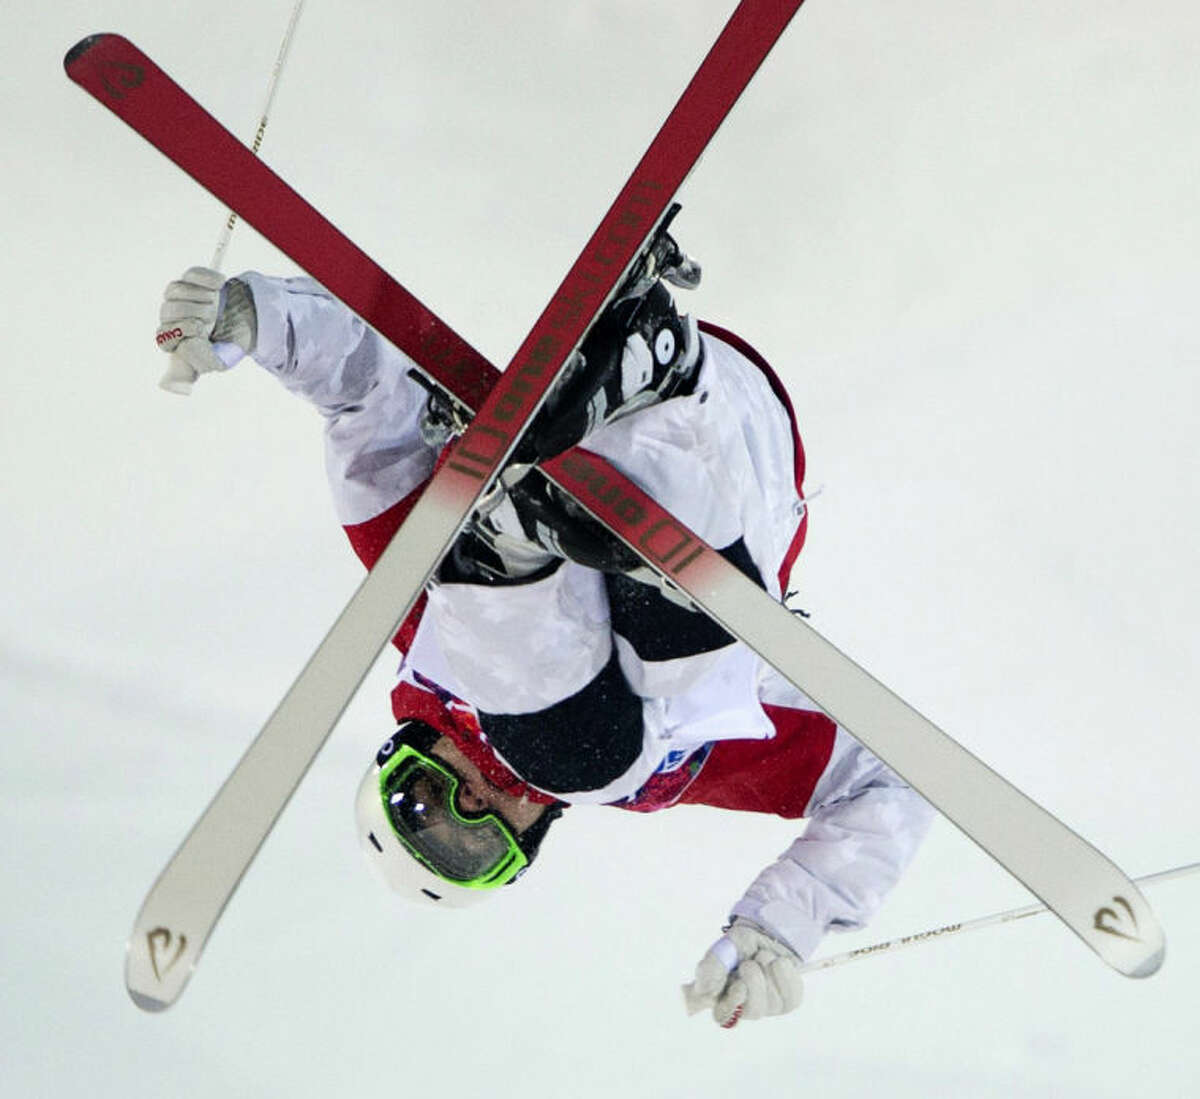 Canada's moguls skier Mikael Kingsbury flies over a jump during freestyle skiing training run at the 2014 Sochi Winter Olympics in Krasnaya Polyna, Russia, Wednesday, Feb. 5, 2014. (AP Photo/The Canadian Press, Jonathan Hayward)